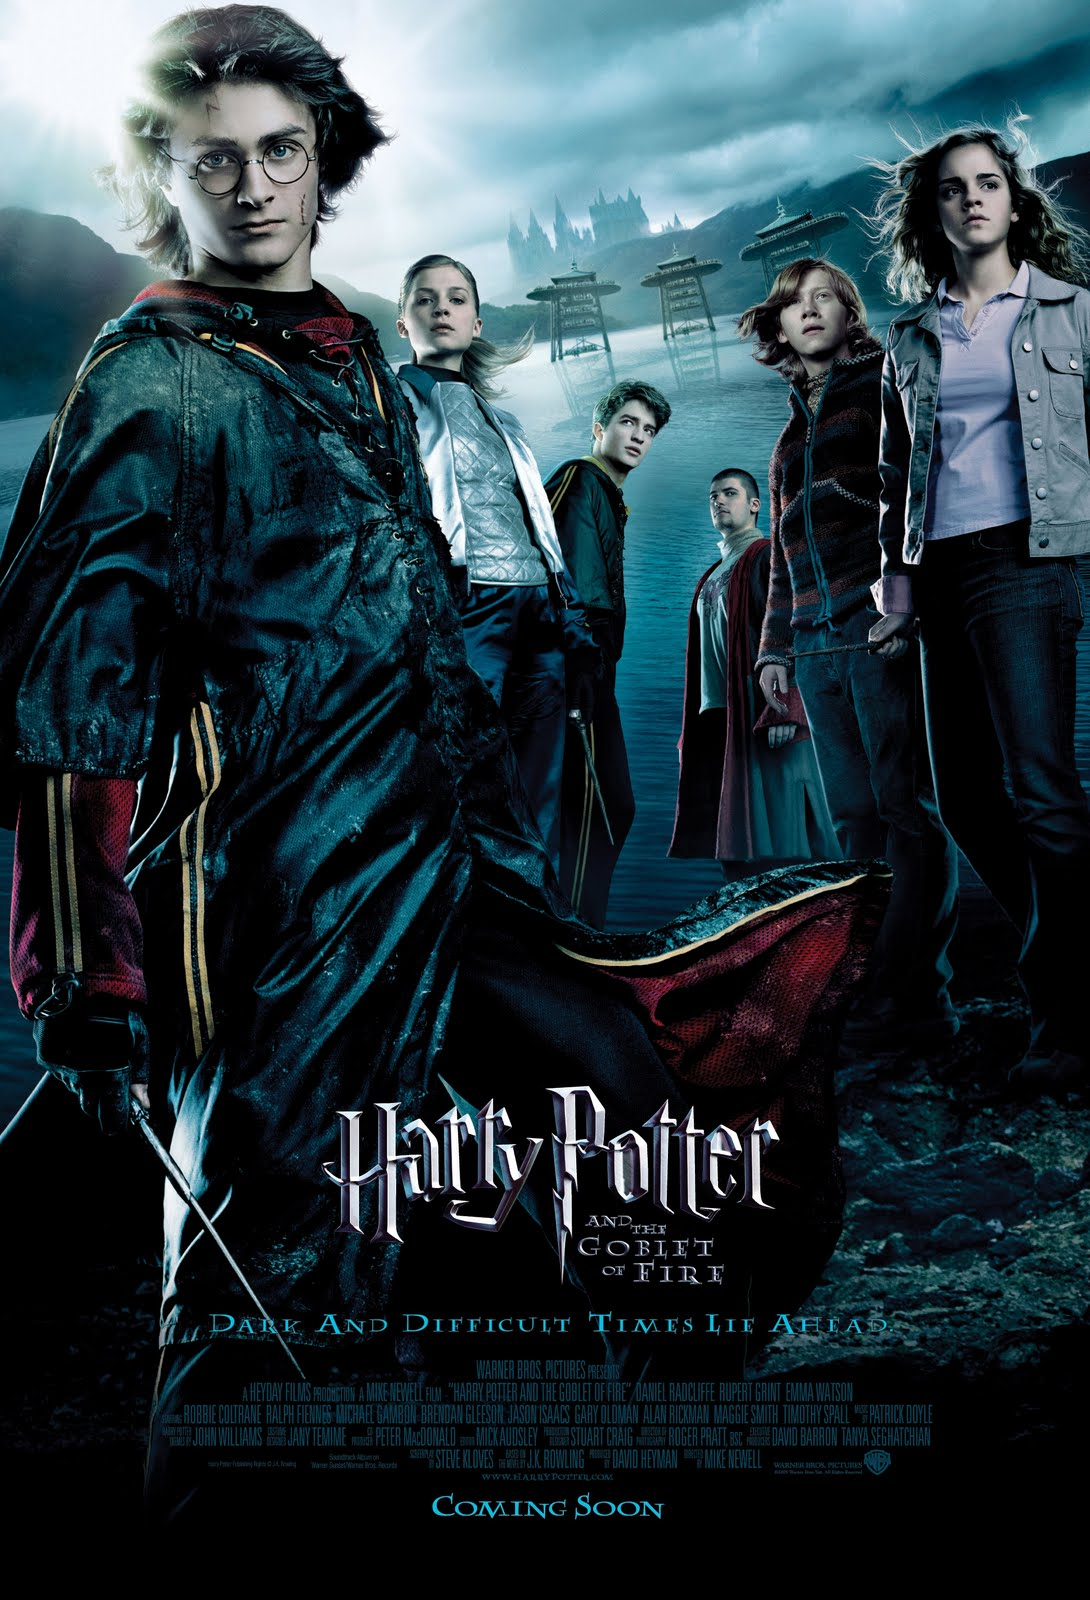 Harry Potter And The Goblet Of Fire (2005) | Archangel Home